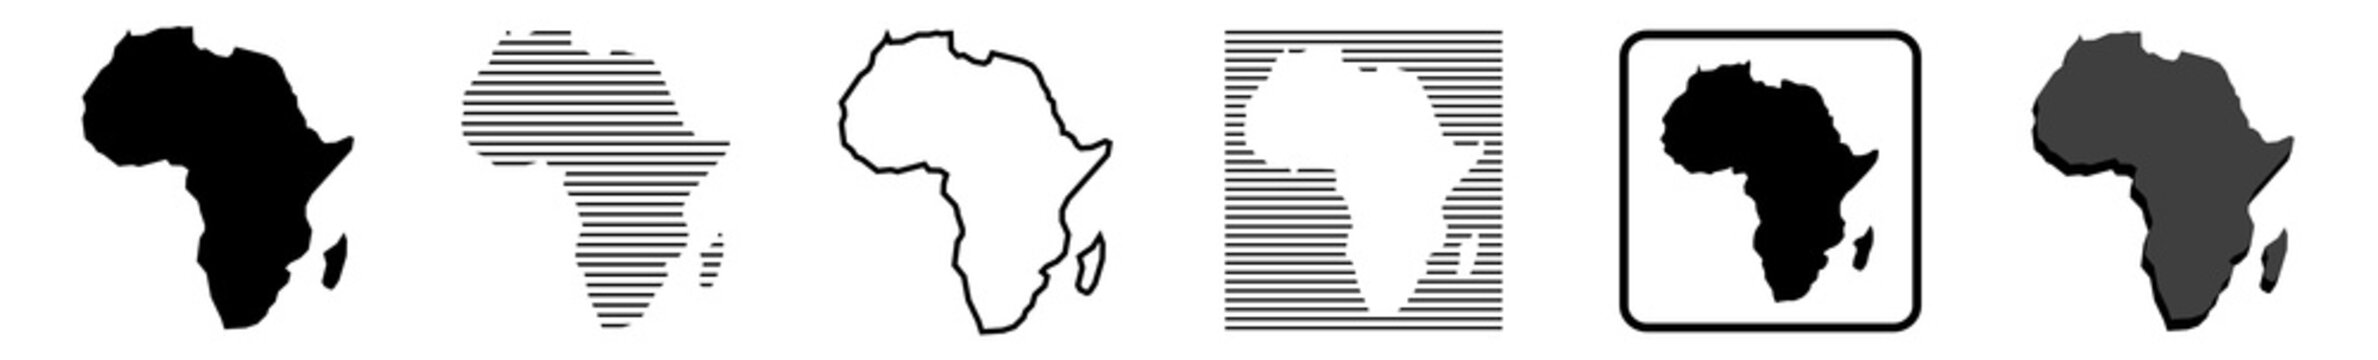 Africa Map | African Border | Continent | Variations